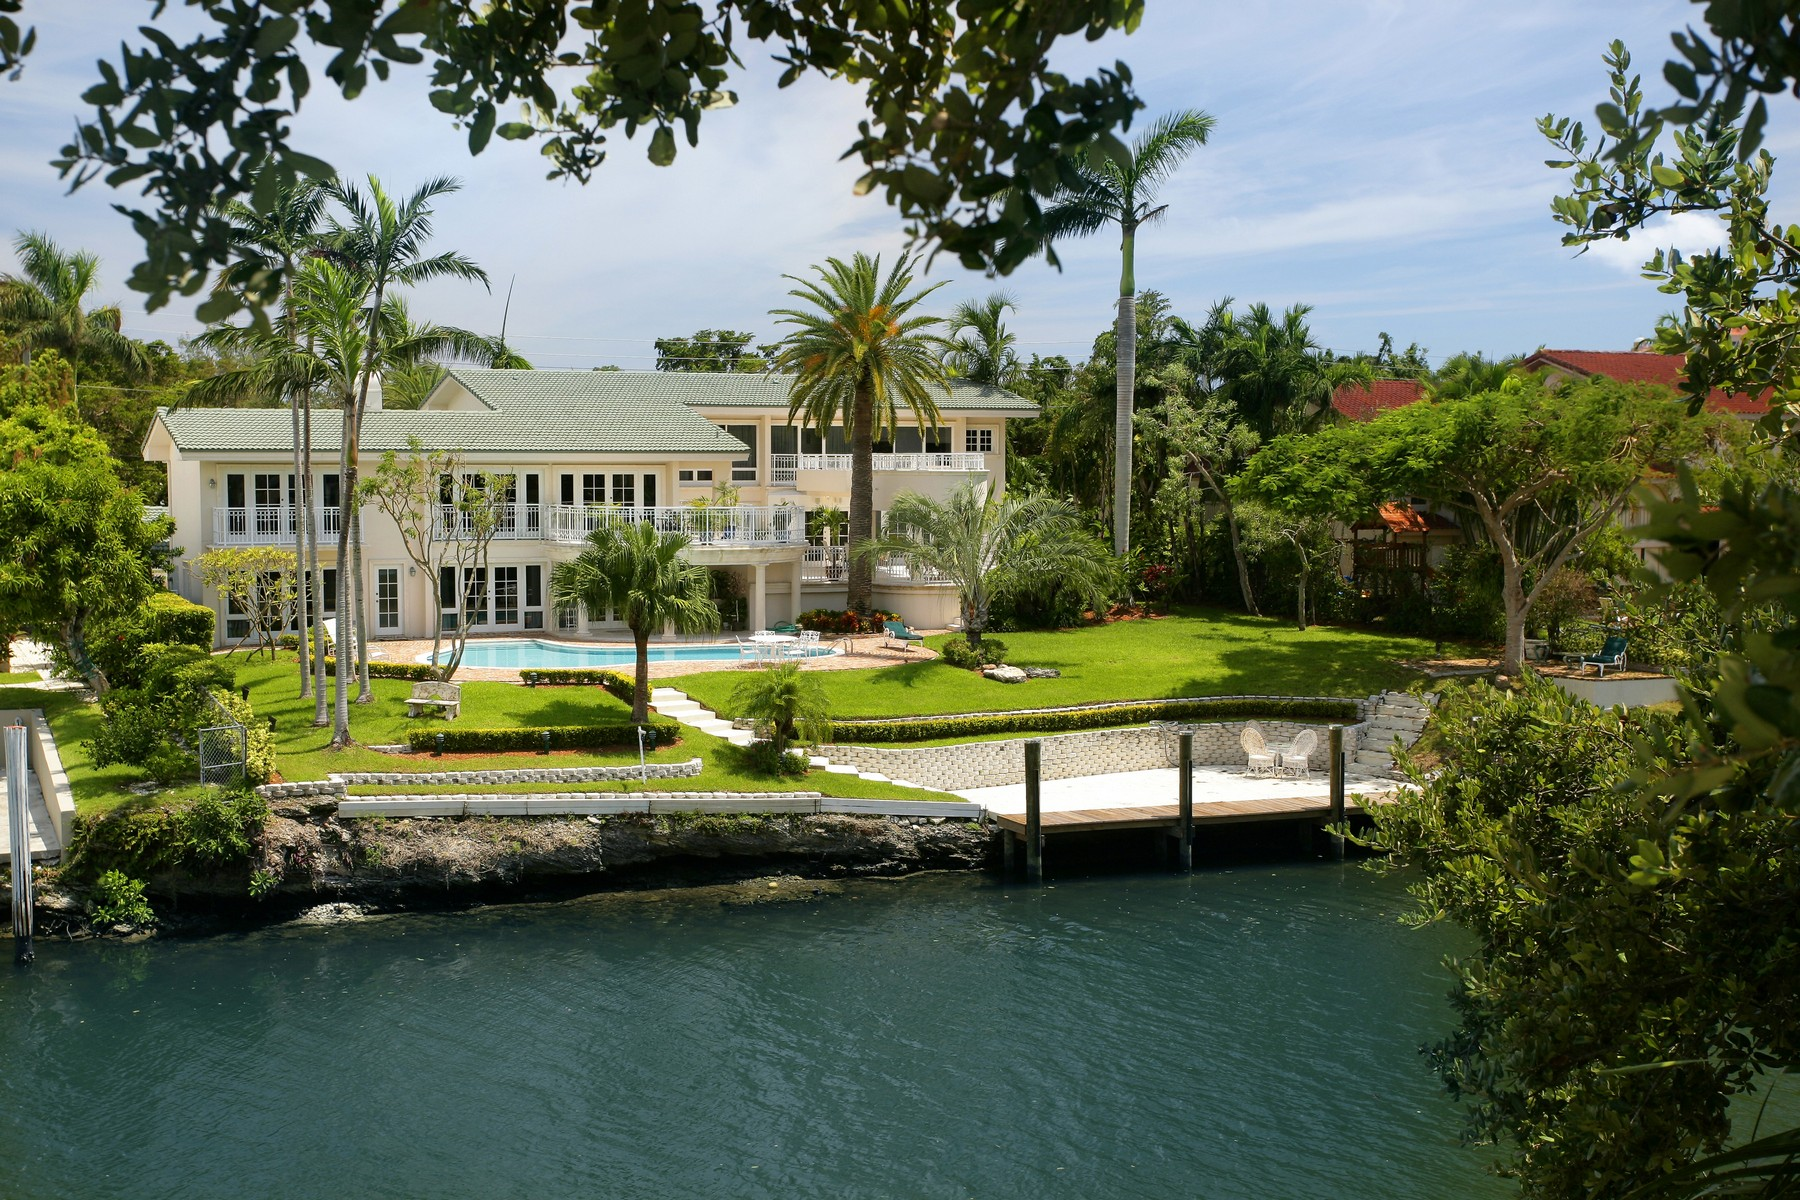 Single Family Home for Sale at 6600 Riviera Drive Coral Gables, Florida 33146 United States